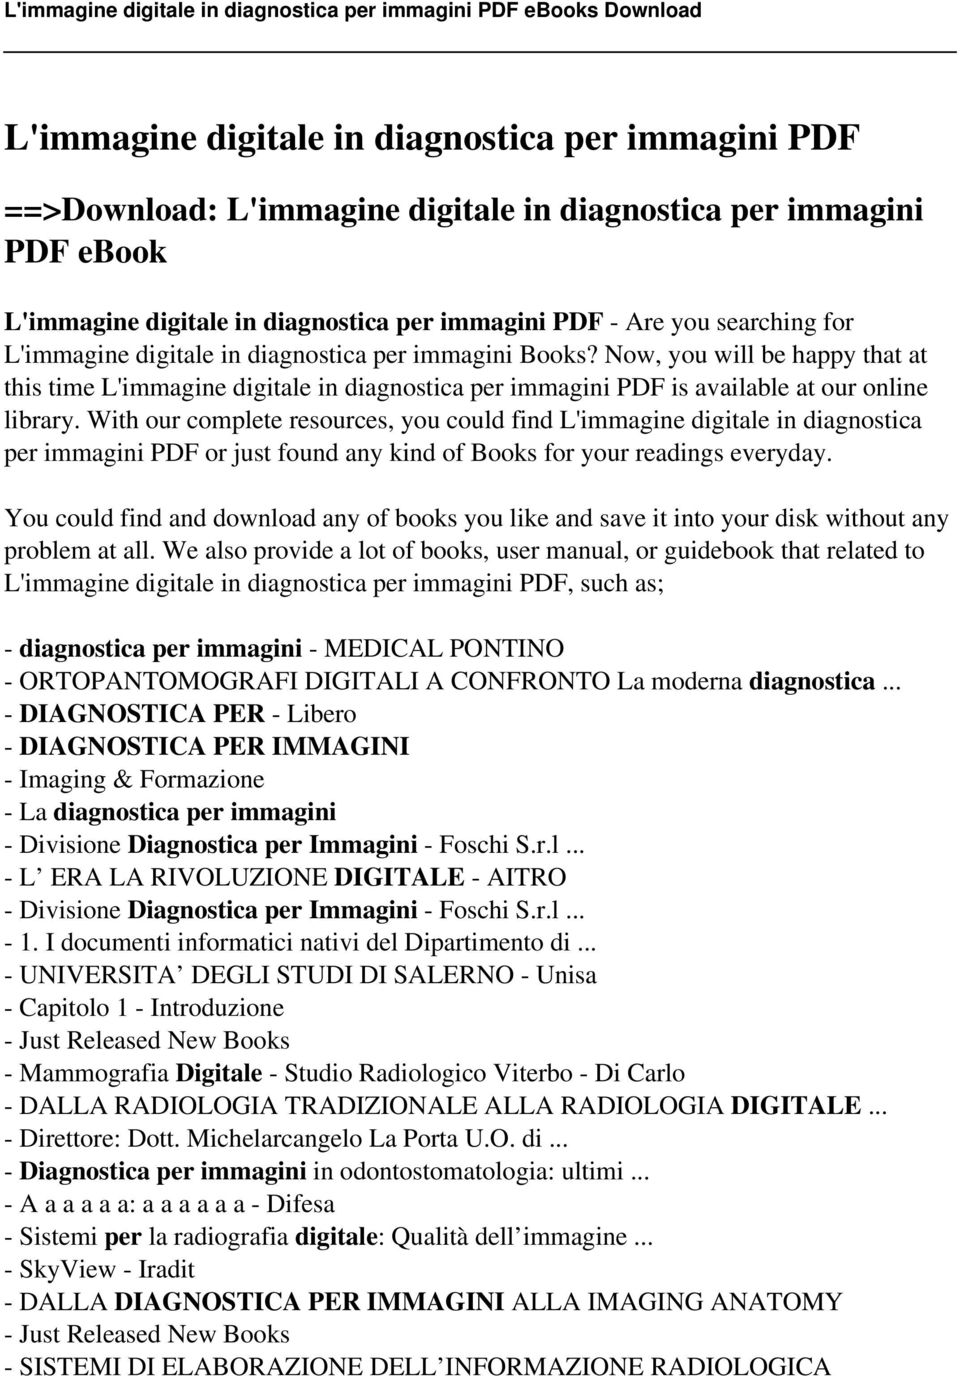 Limmagine digitale in diagnostica per immagini pdf pdf with our complete resources you could find limmagine digitale in diagnostica per immagini fandeluxe Choice Image